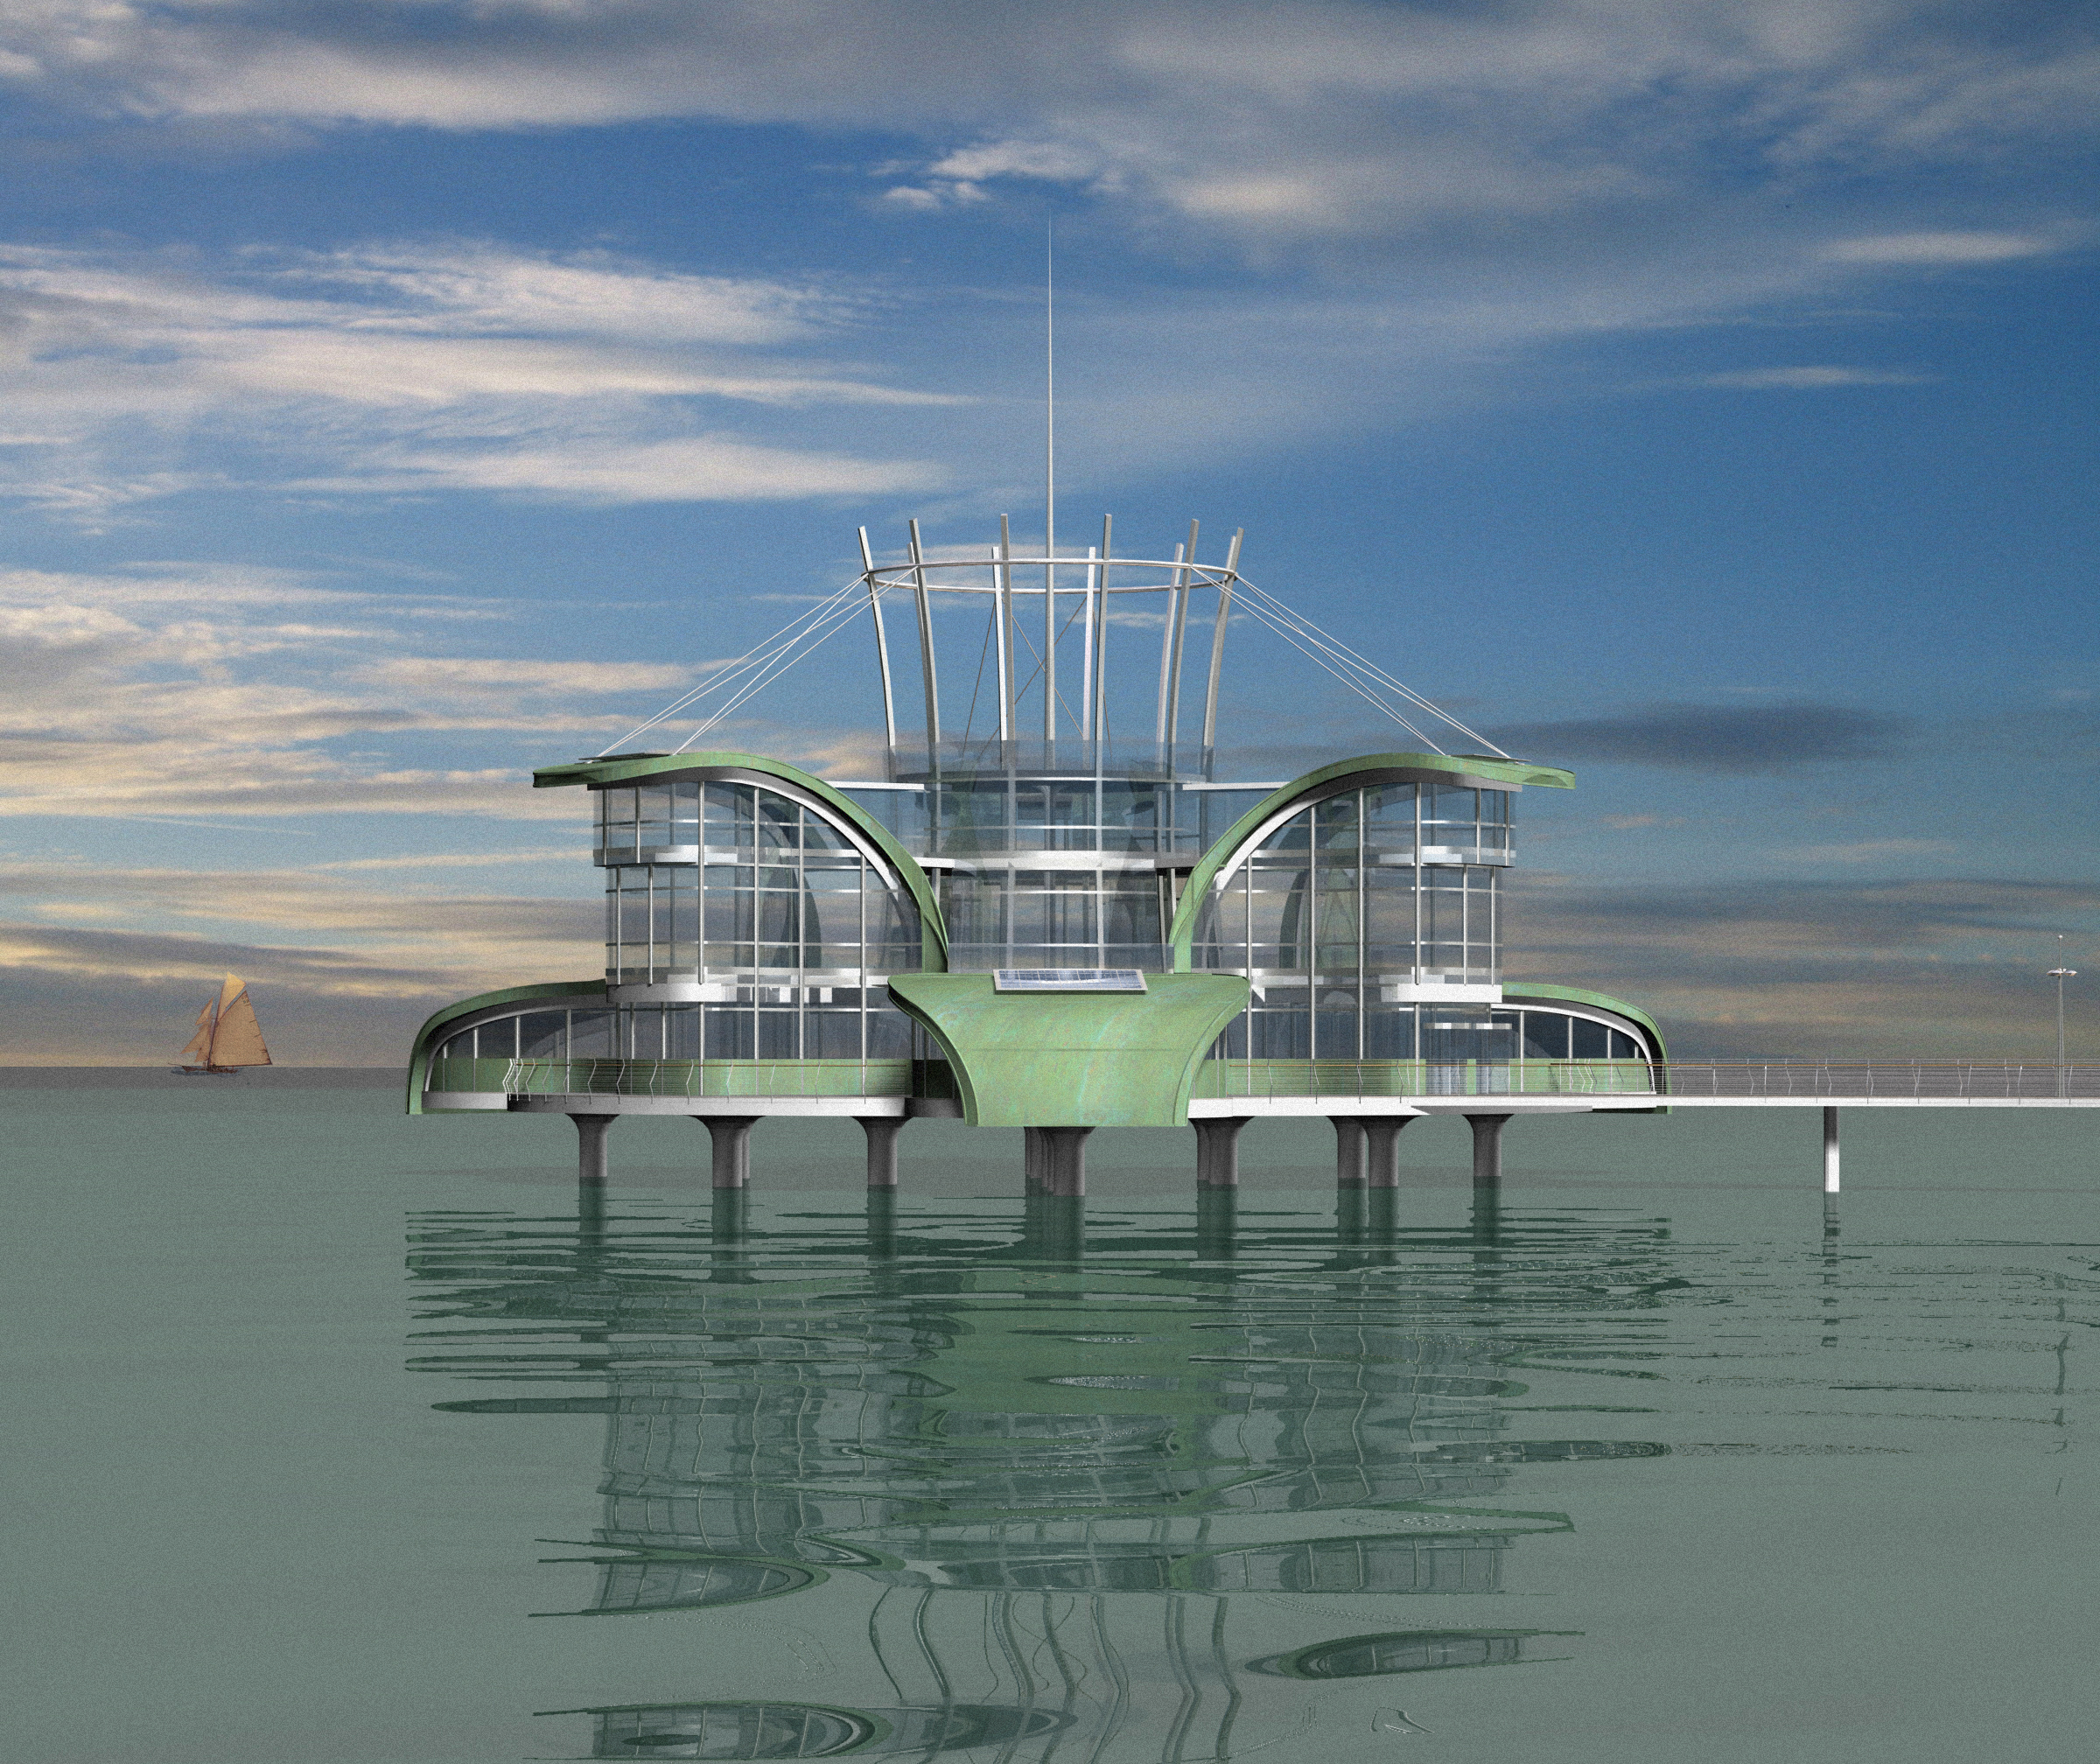 Jetty design competition